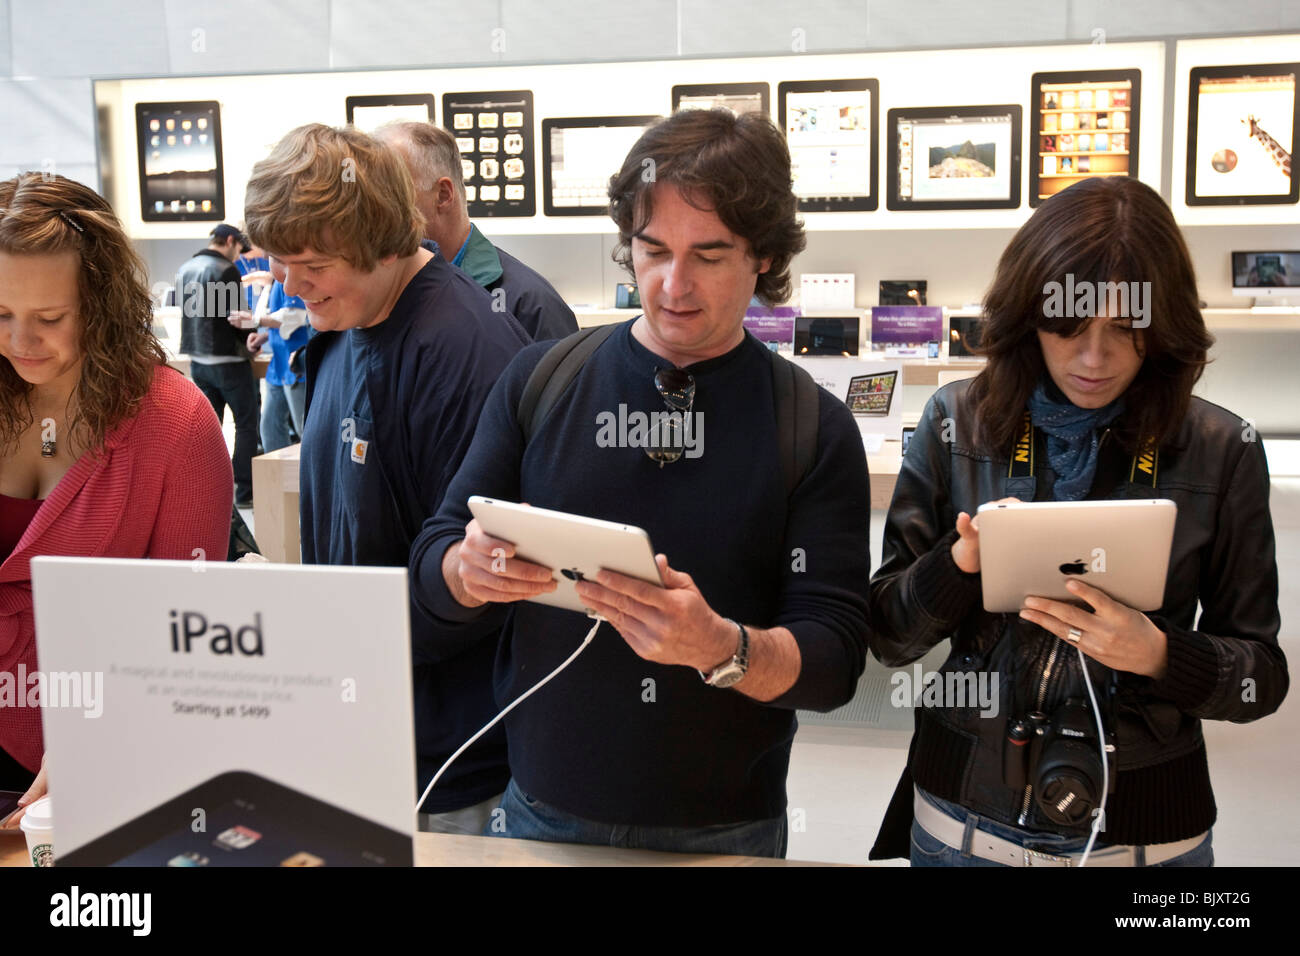 People try out the Apple iPad at the UWS Apple store in New York, USA, 3 April 2010. Stock Photo